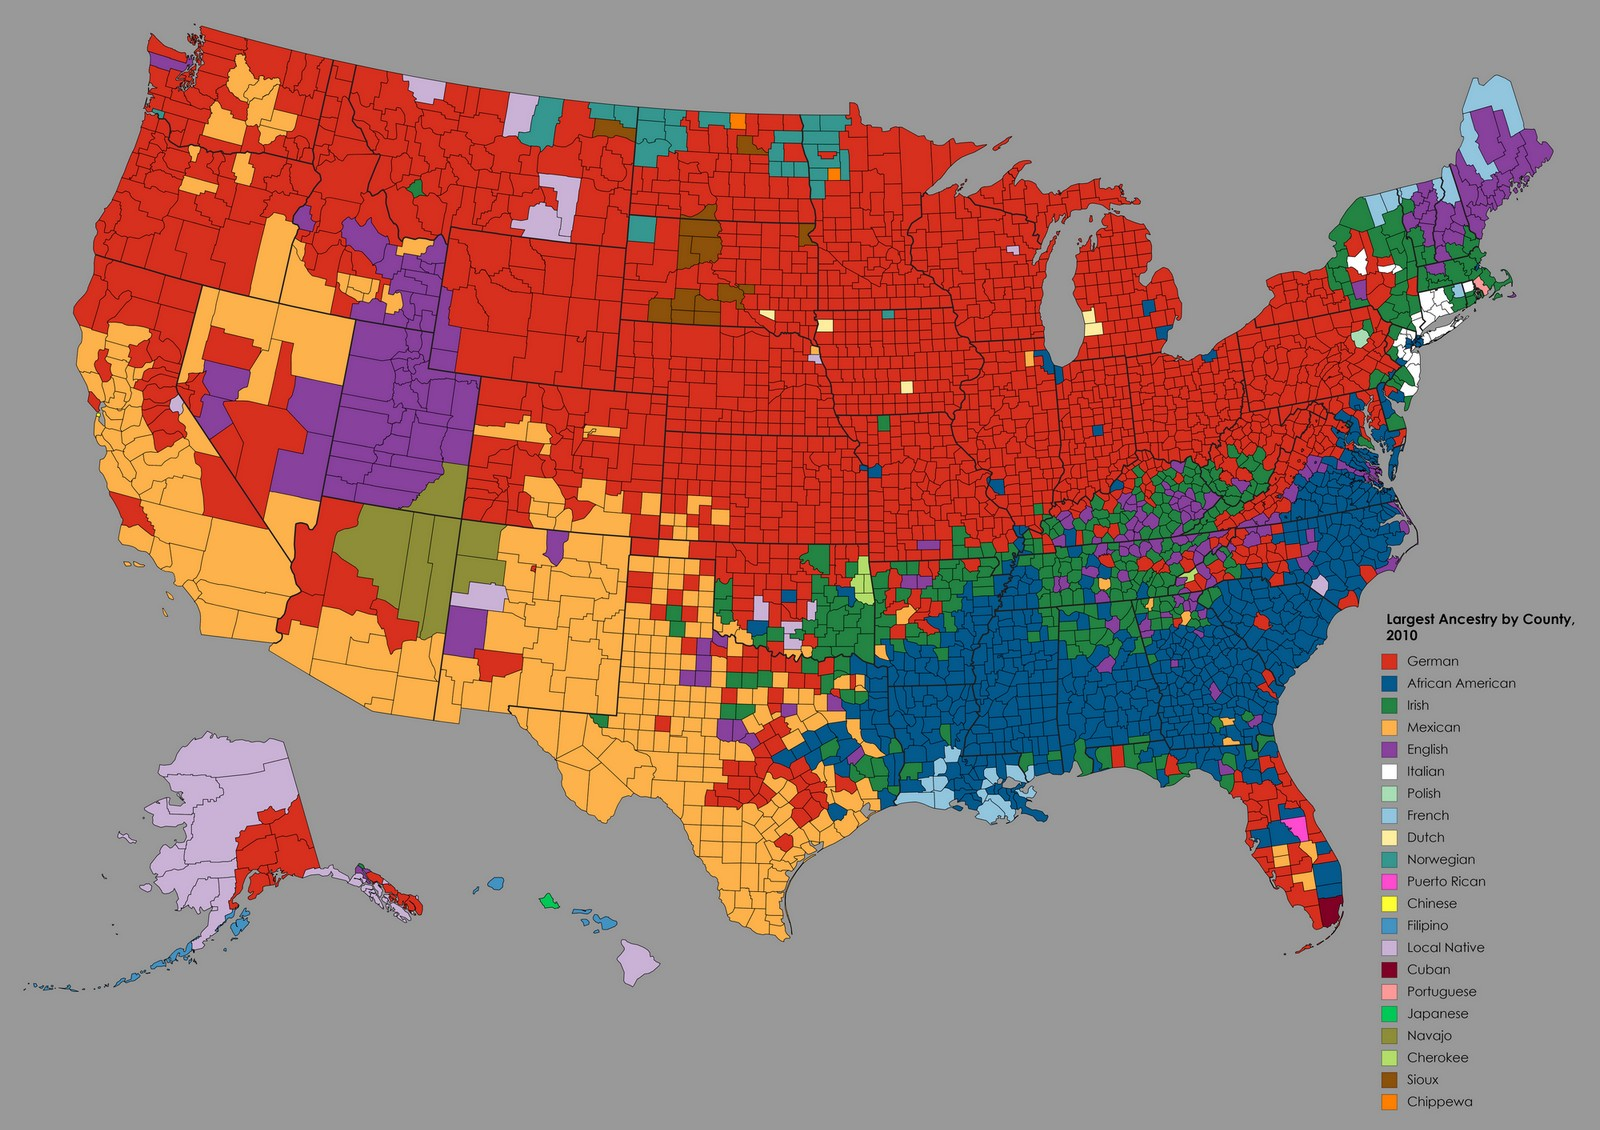 ethnicity map united states Largest Ancestry by U.S. County   Vivid Maps